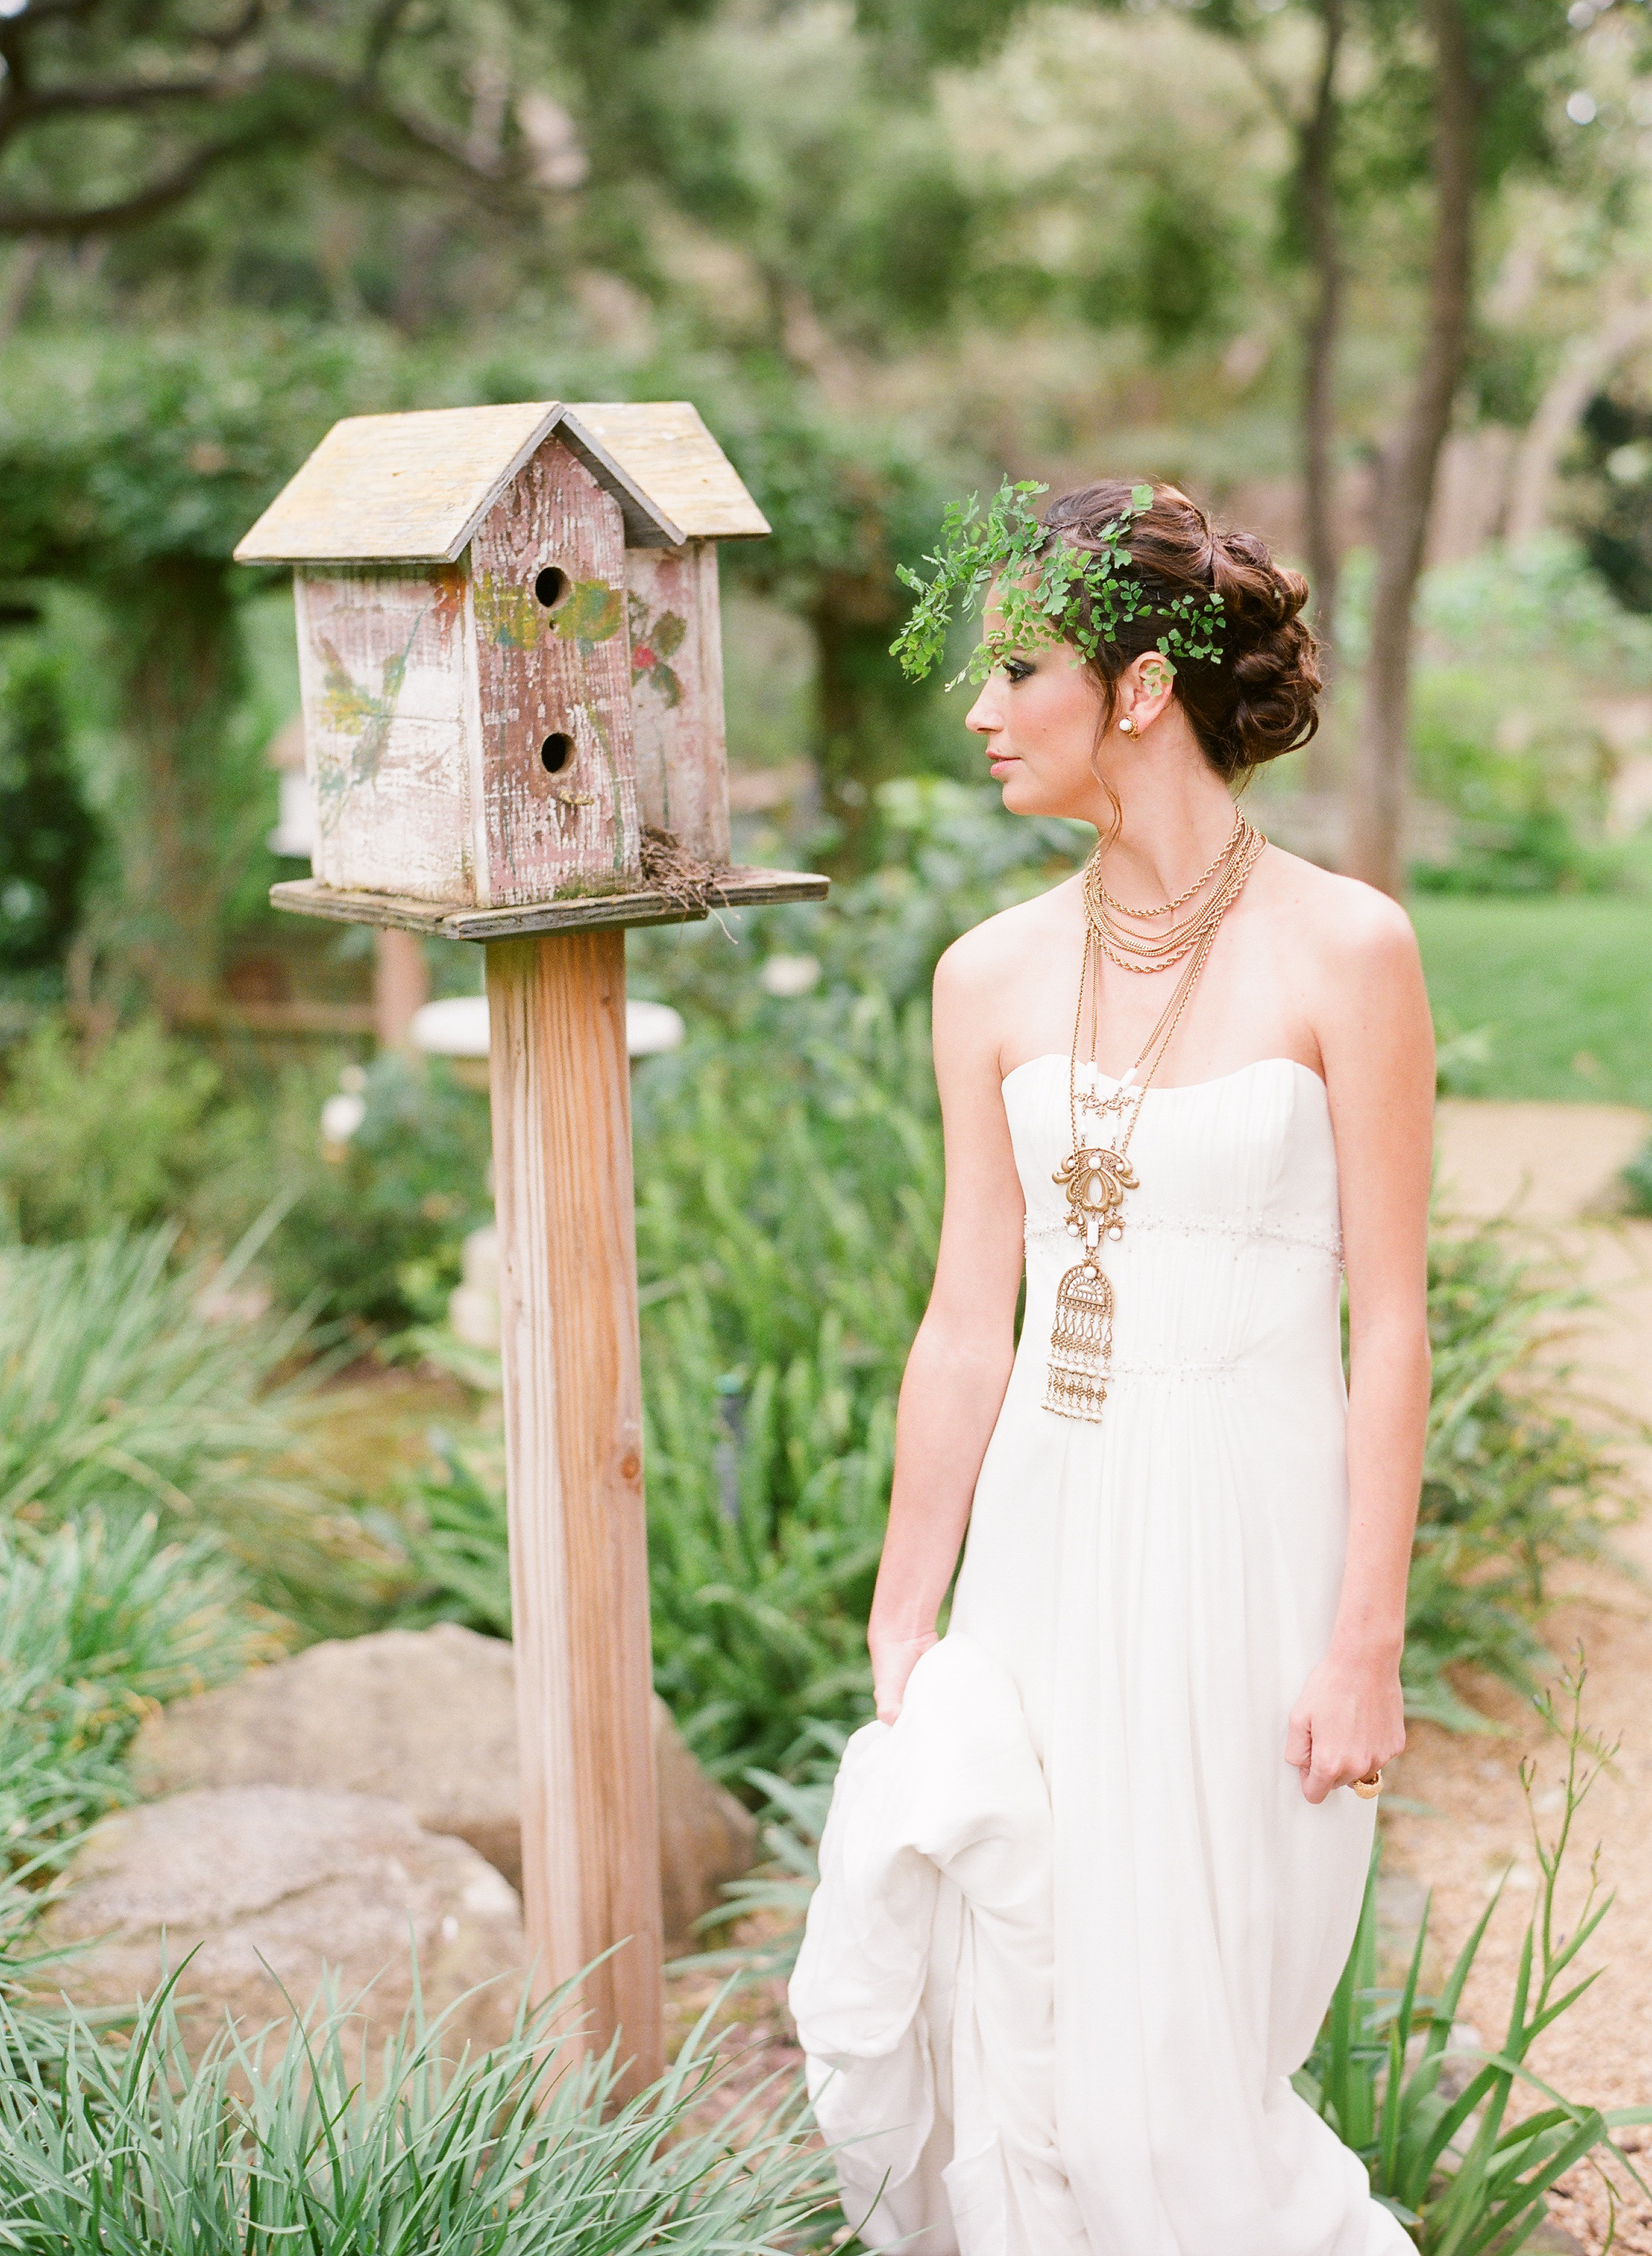 Styled-wedding-santa-barbara-chic-beaux-arts-photographie-italian-bohemian-wedding-bride-wedding-dress-white-flowers-bouquet-070.original